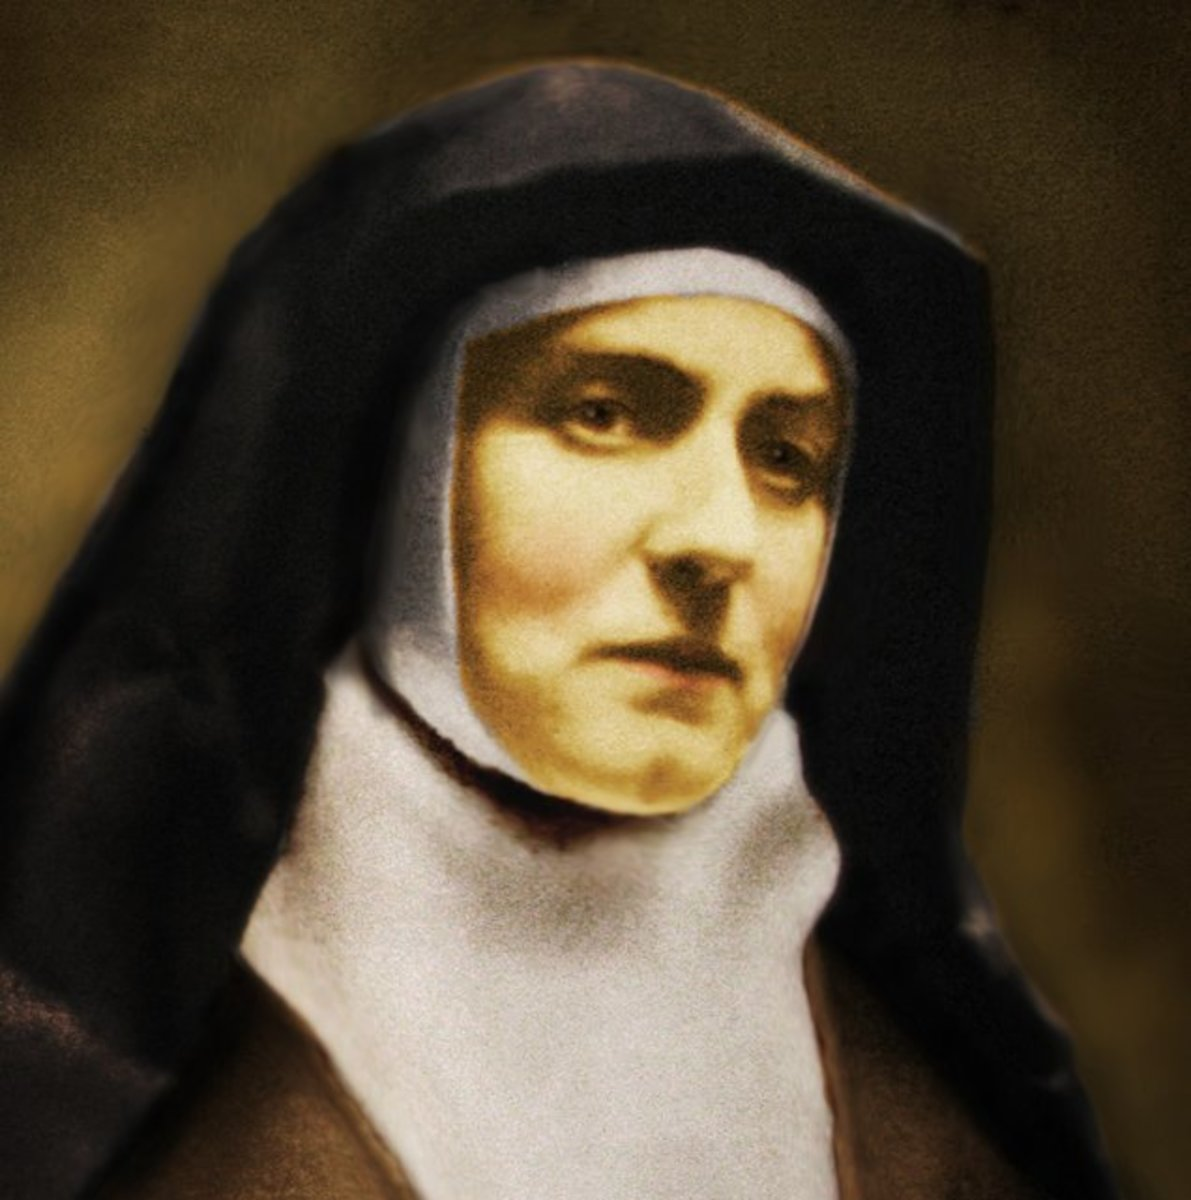 The Last Days of Saint Edith Stein